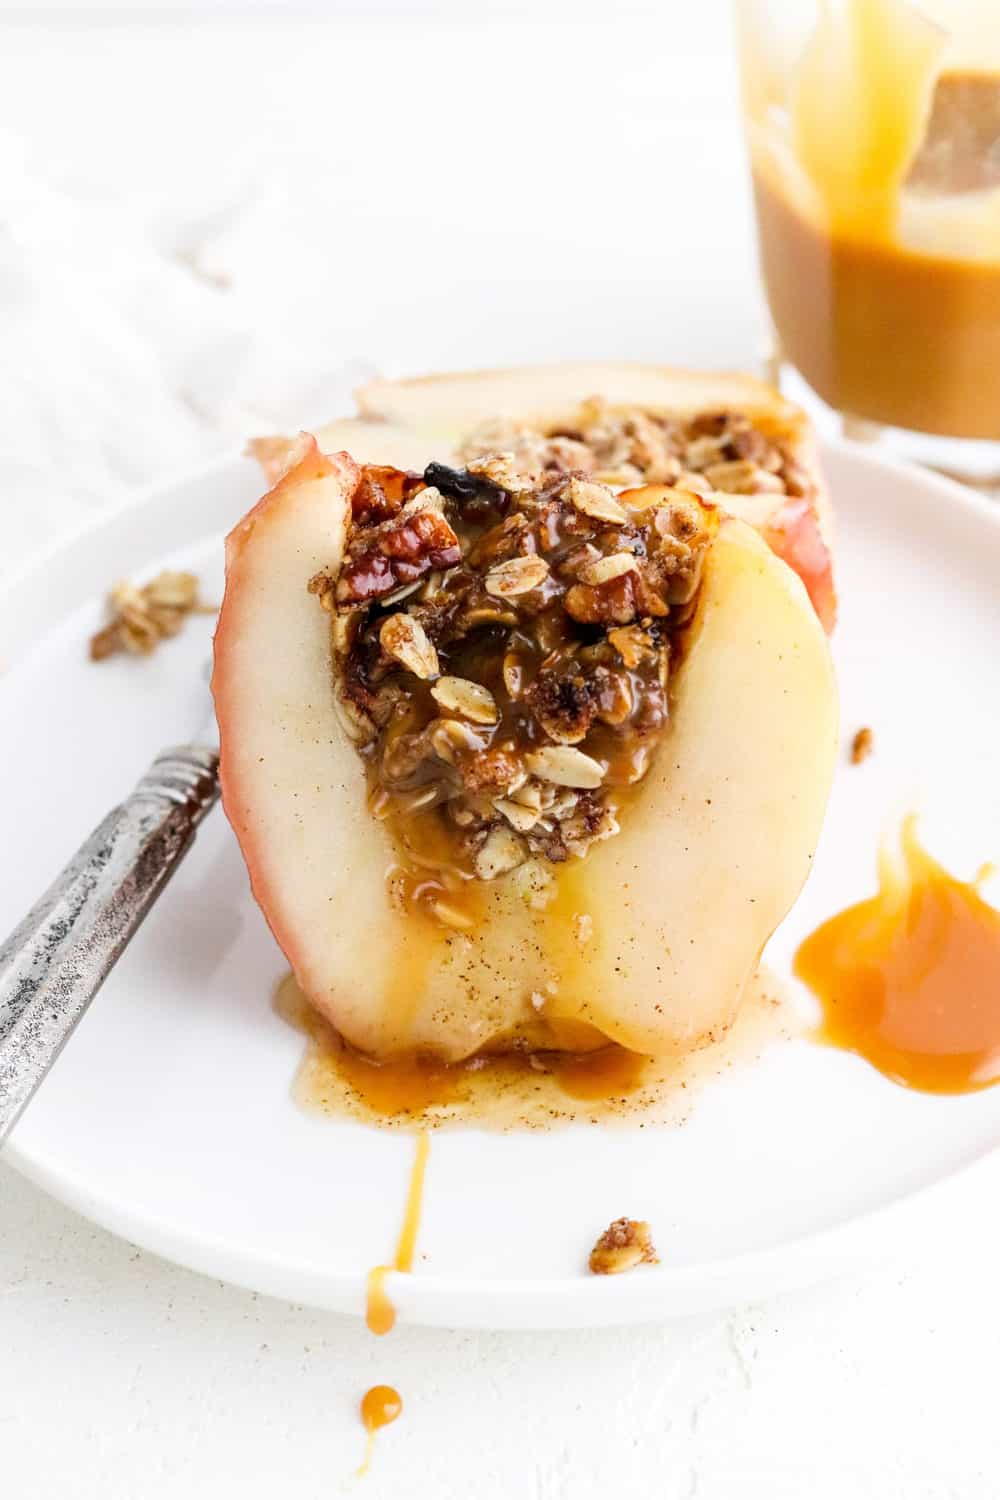 Sliced baked apples with gooey oat crumbs filling in the center on a white plate with a silver fork next to it and a jar of caramel sauce behind it.